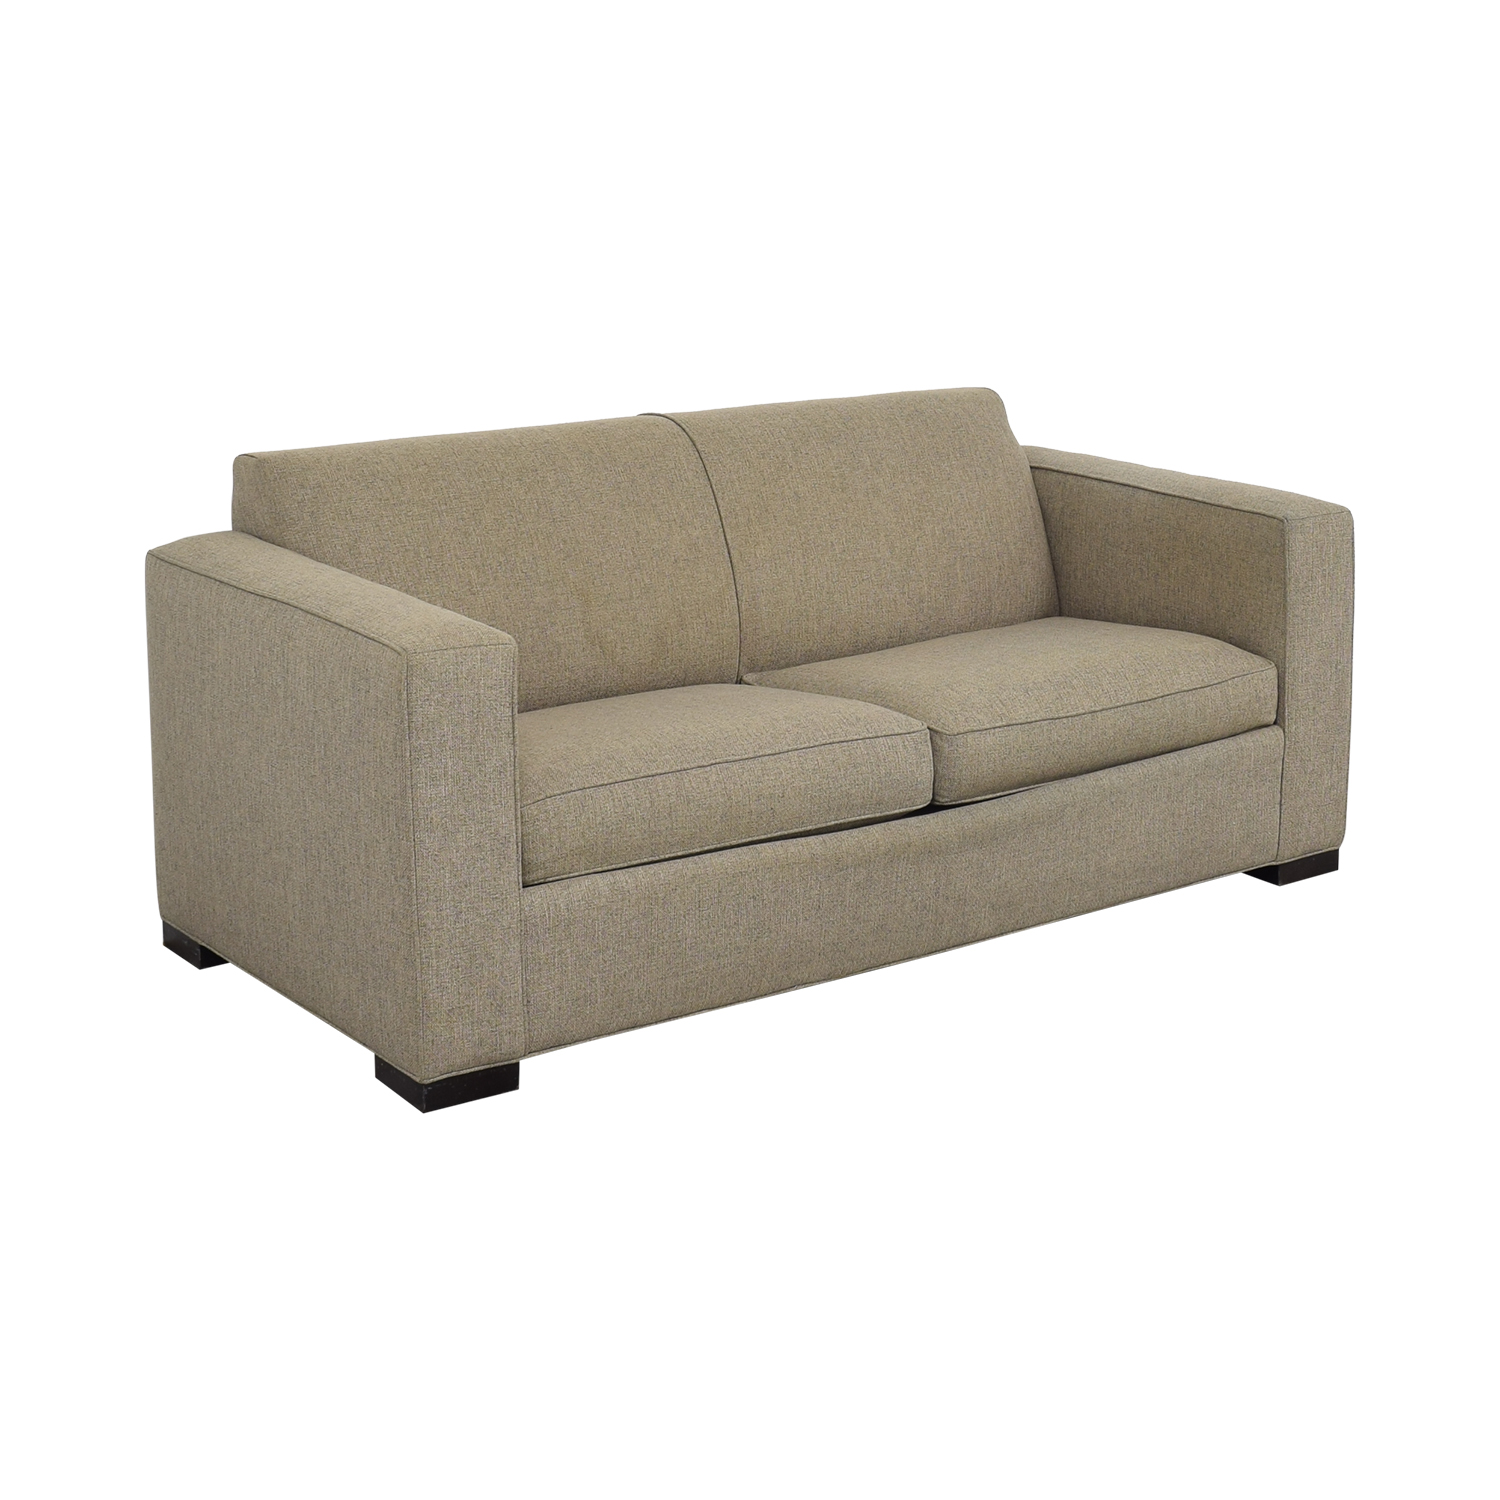 buy Room & Board Levin Full Sleeper Sofa Room & Board Sofas